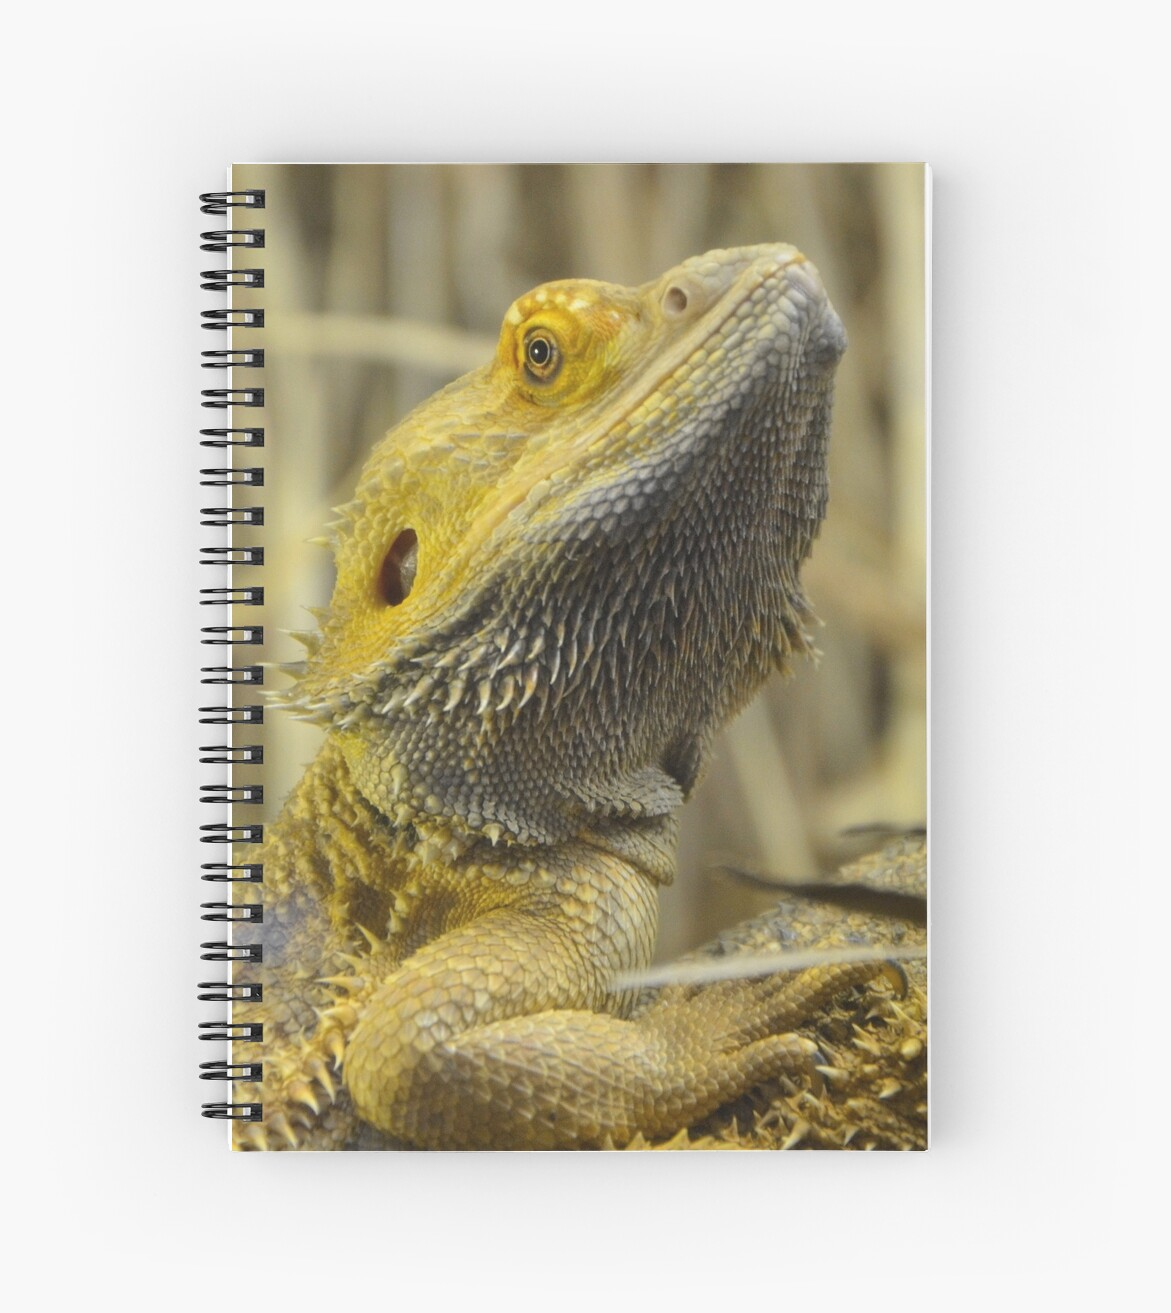 the characteristics of the inland bearded dragon